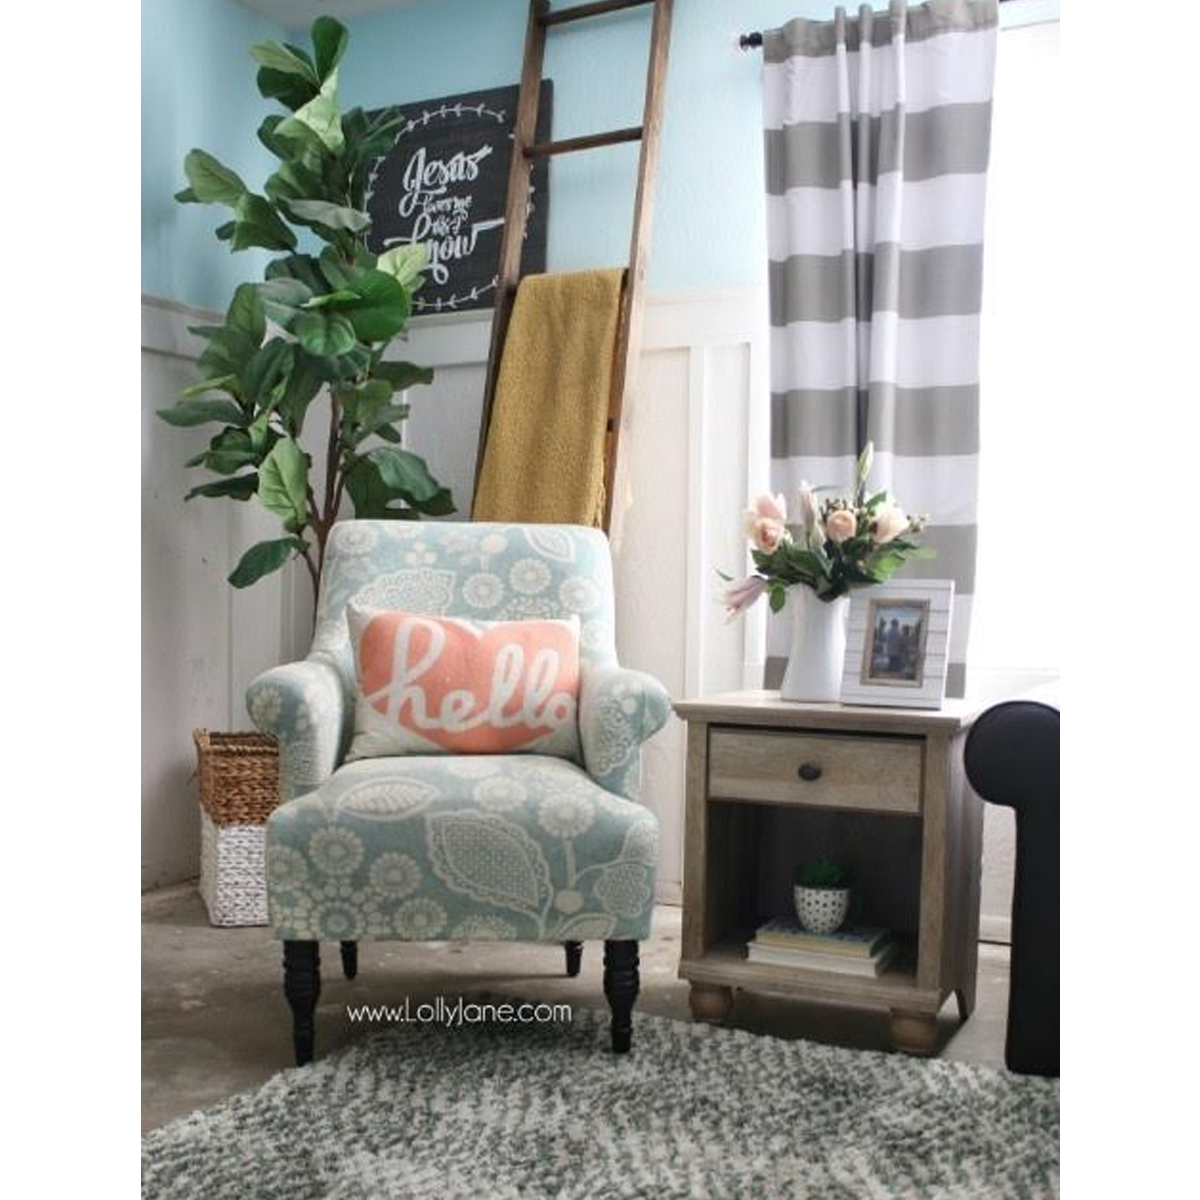 Upholstered accent chair next to wooden side table with drawer photo